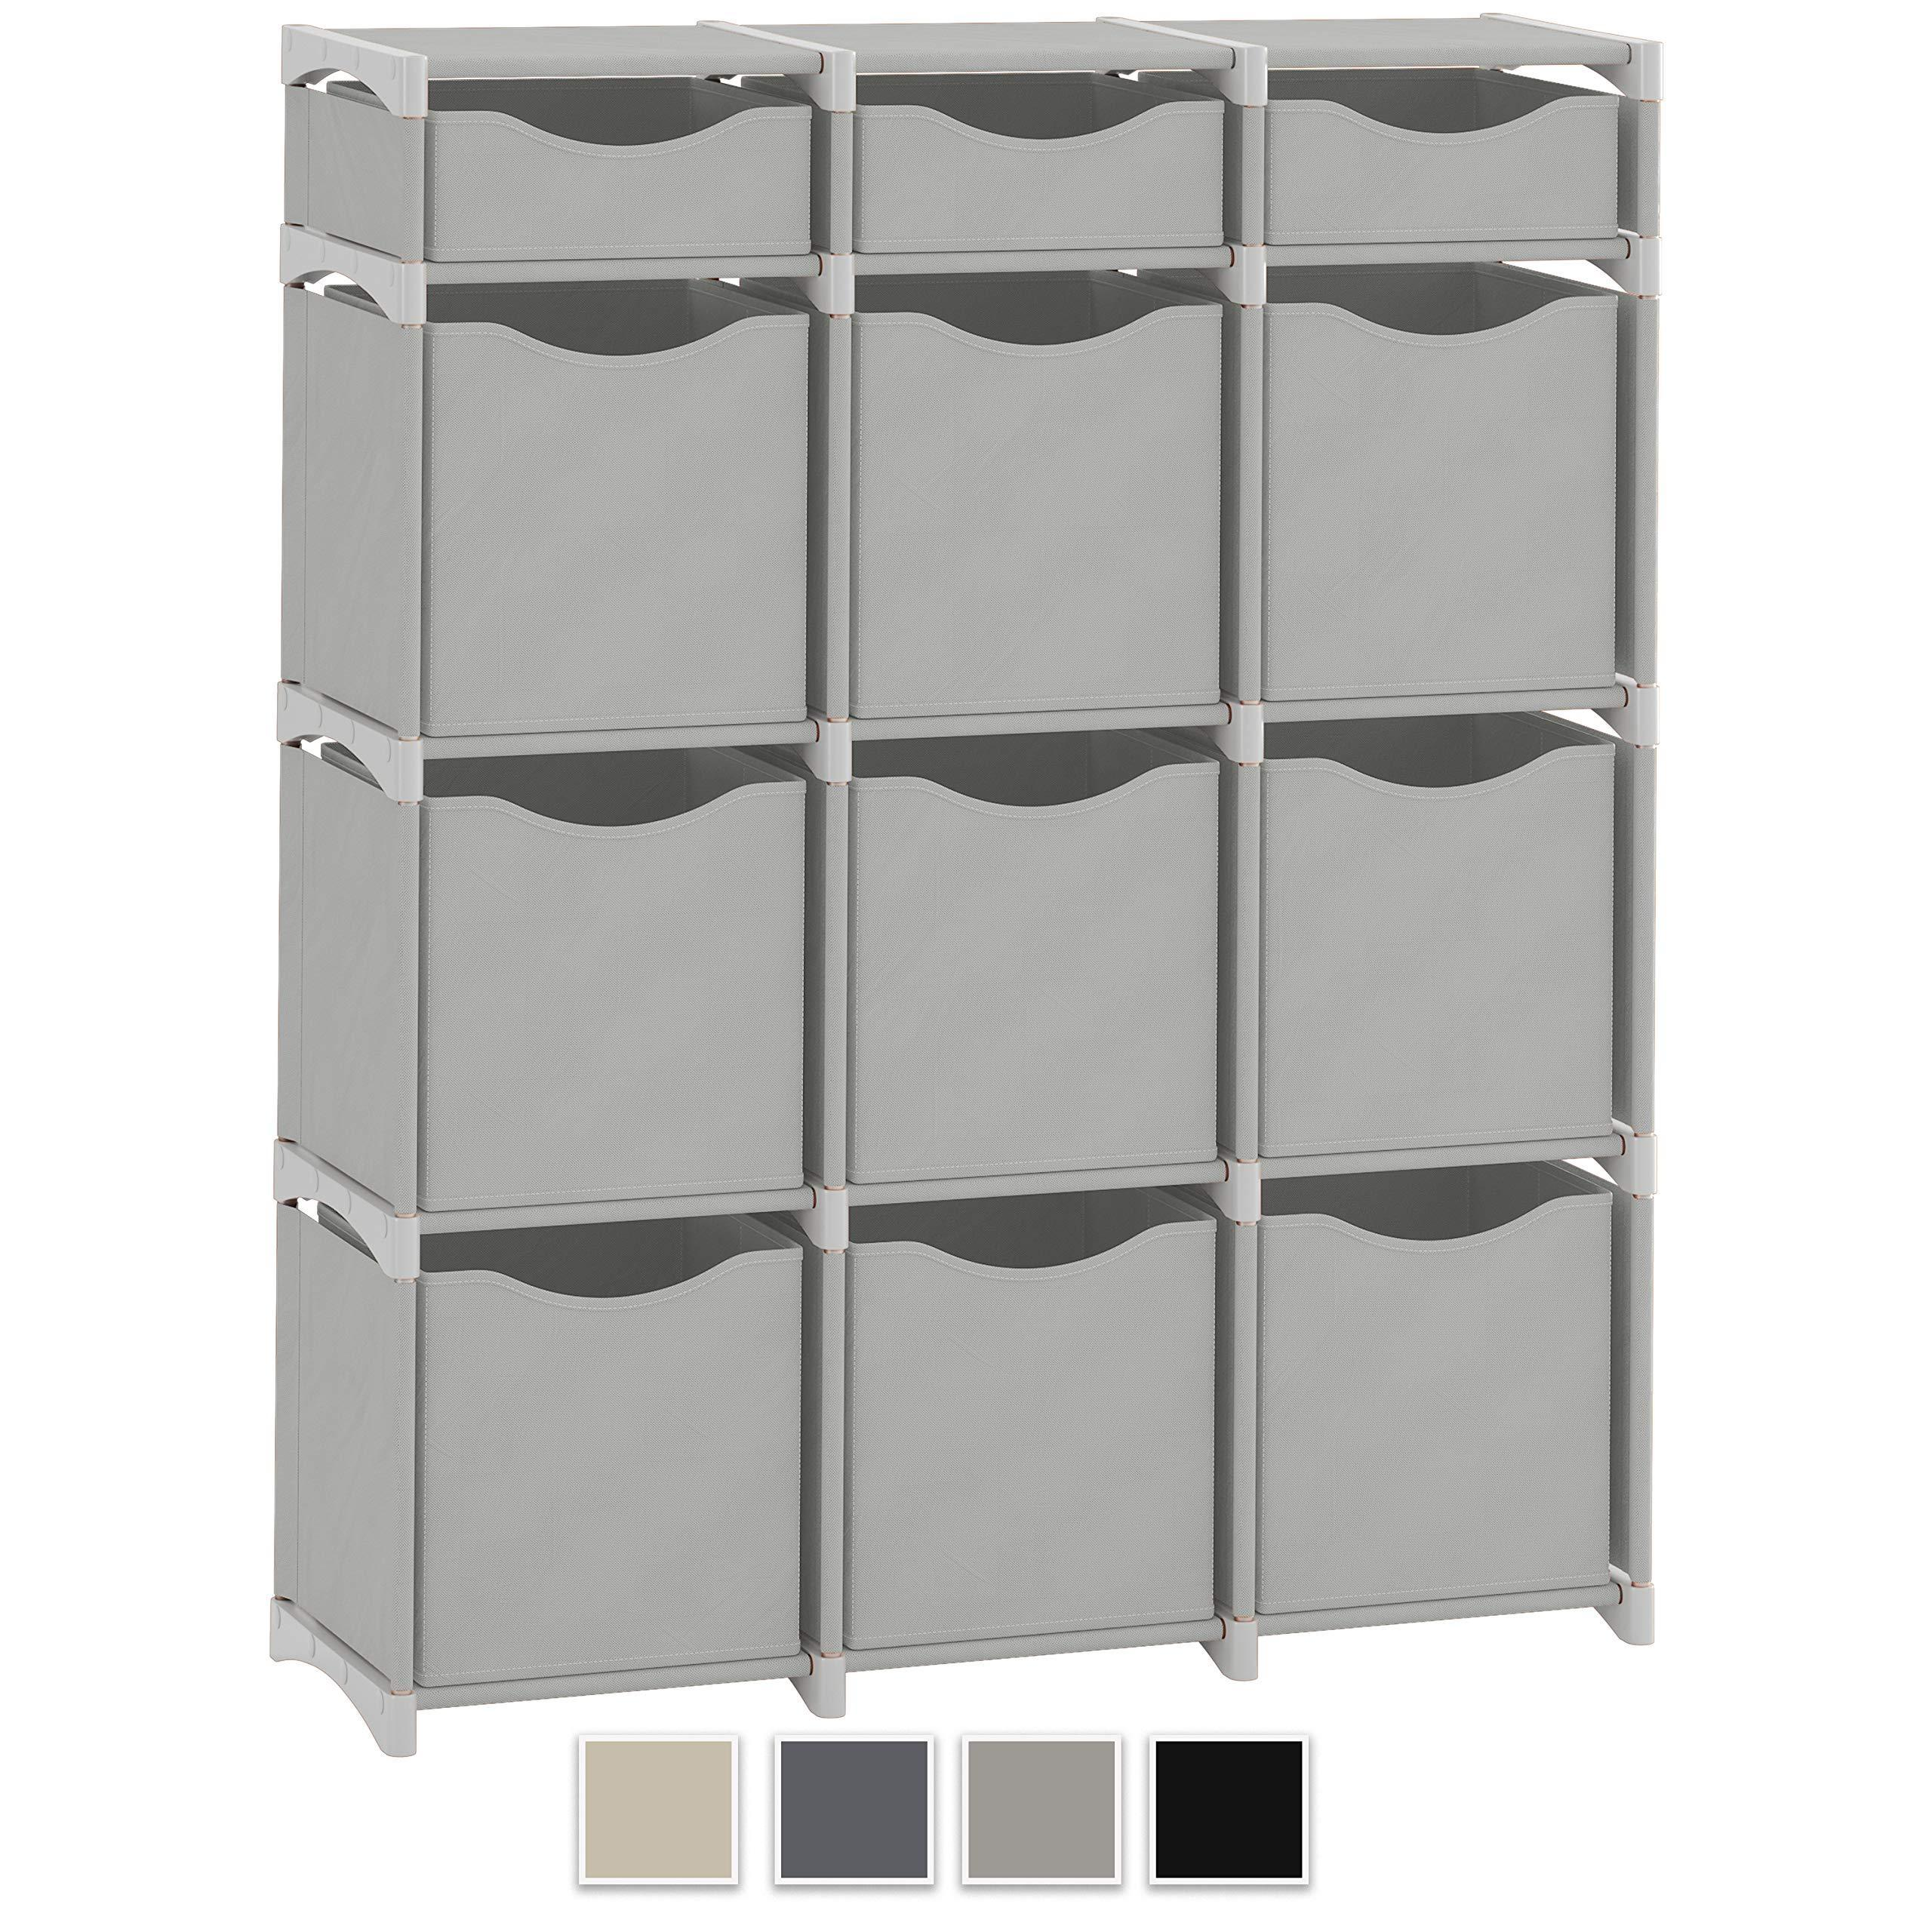 Heavy duty 12 cube organizer set of storage cubes included diy cubby organizer bins cube shelves ladder storage unit shelf closet organizer for bedroom playroom livingroom office light grey